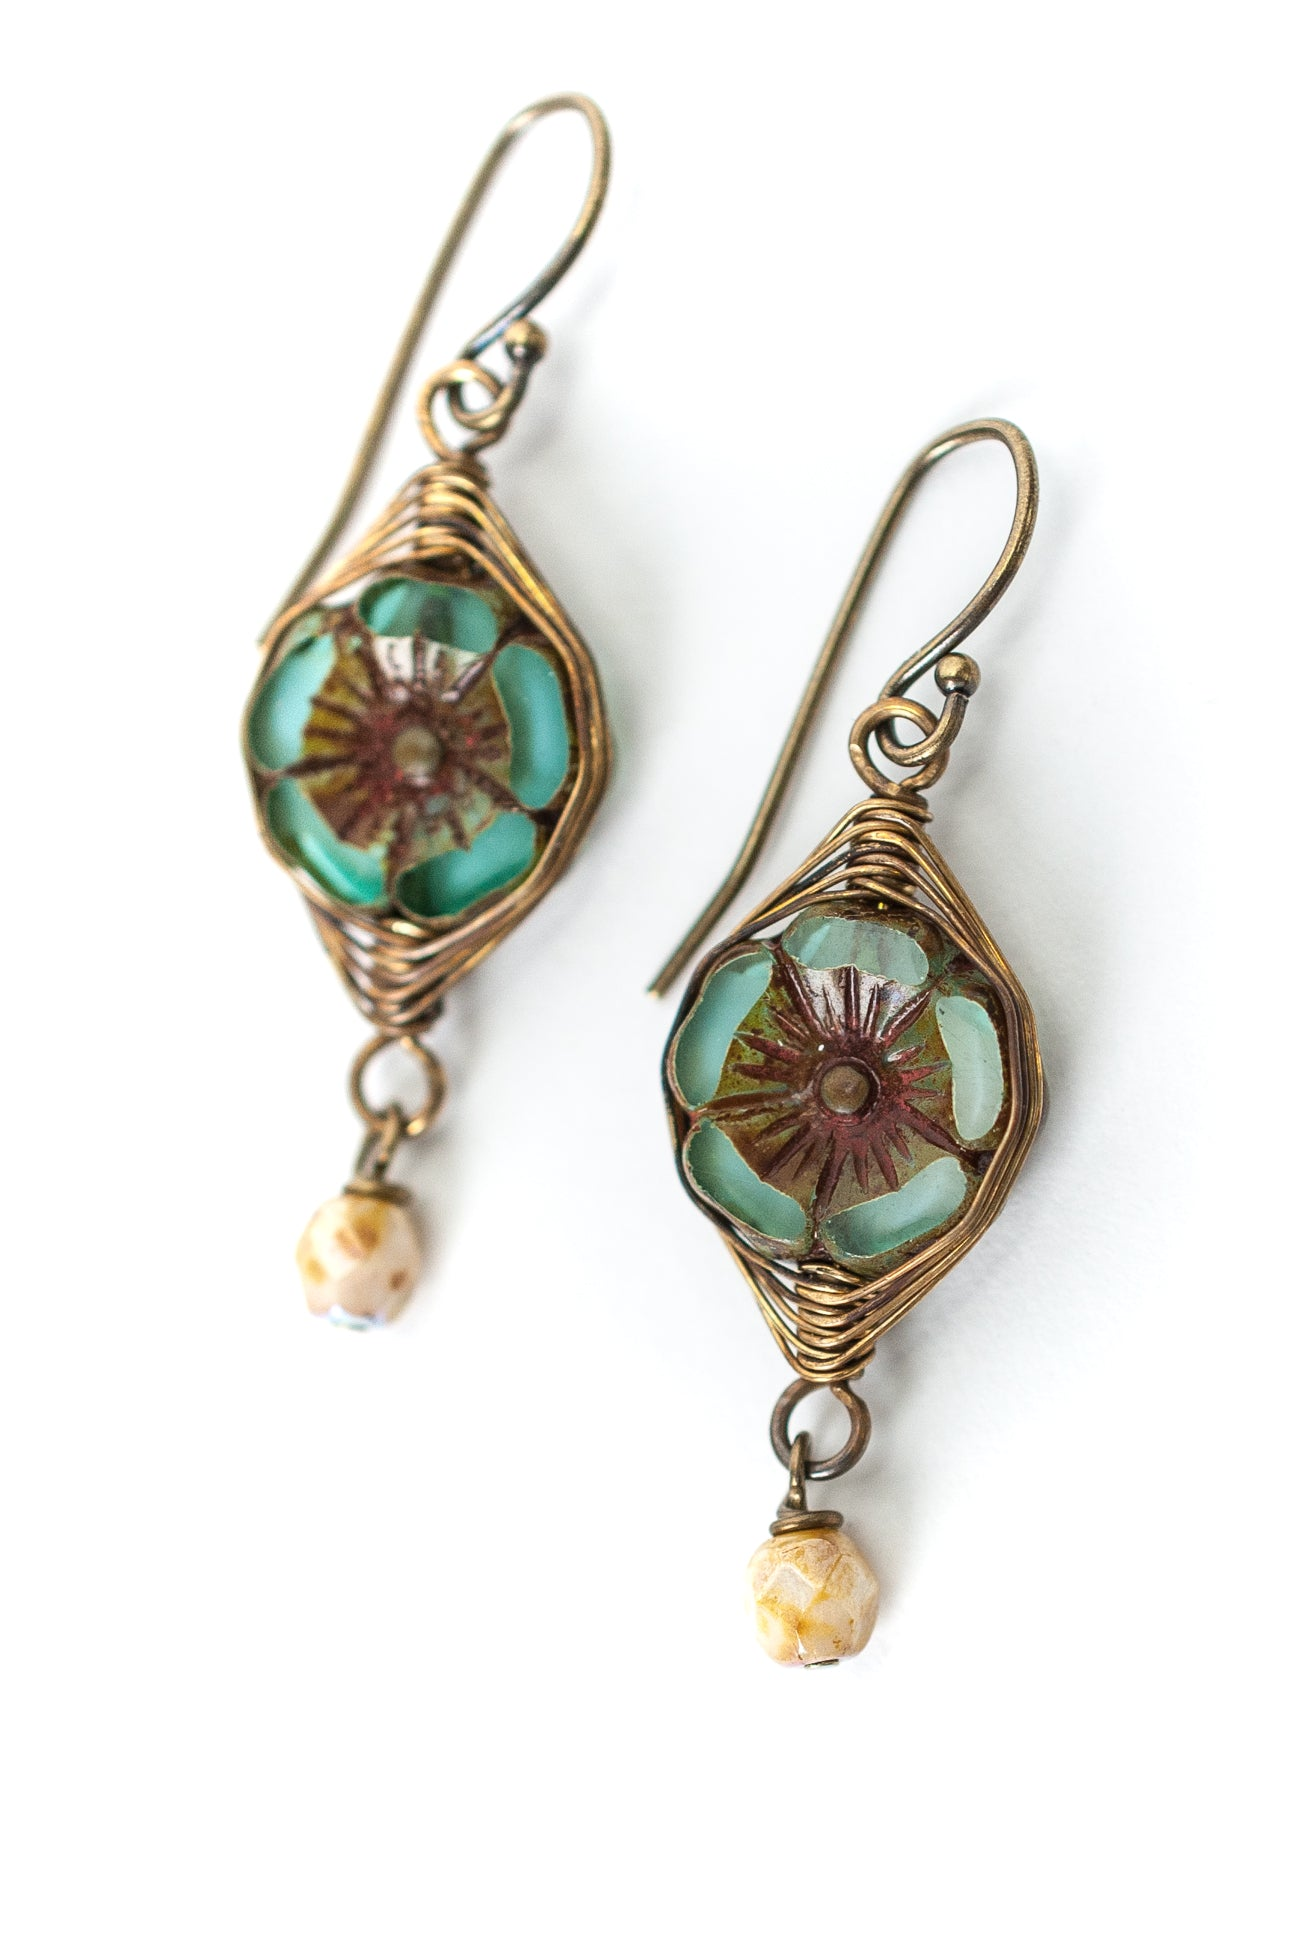 Rustic Creek Czech Glass Flower Herringbone Earrings